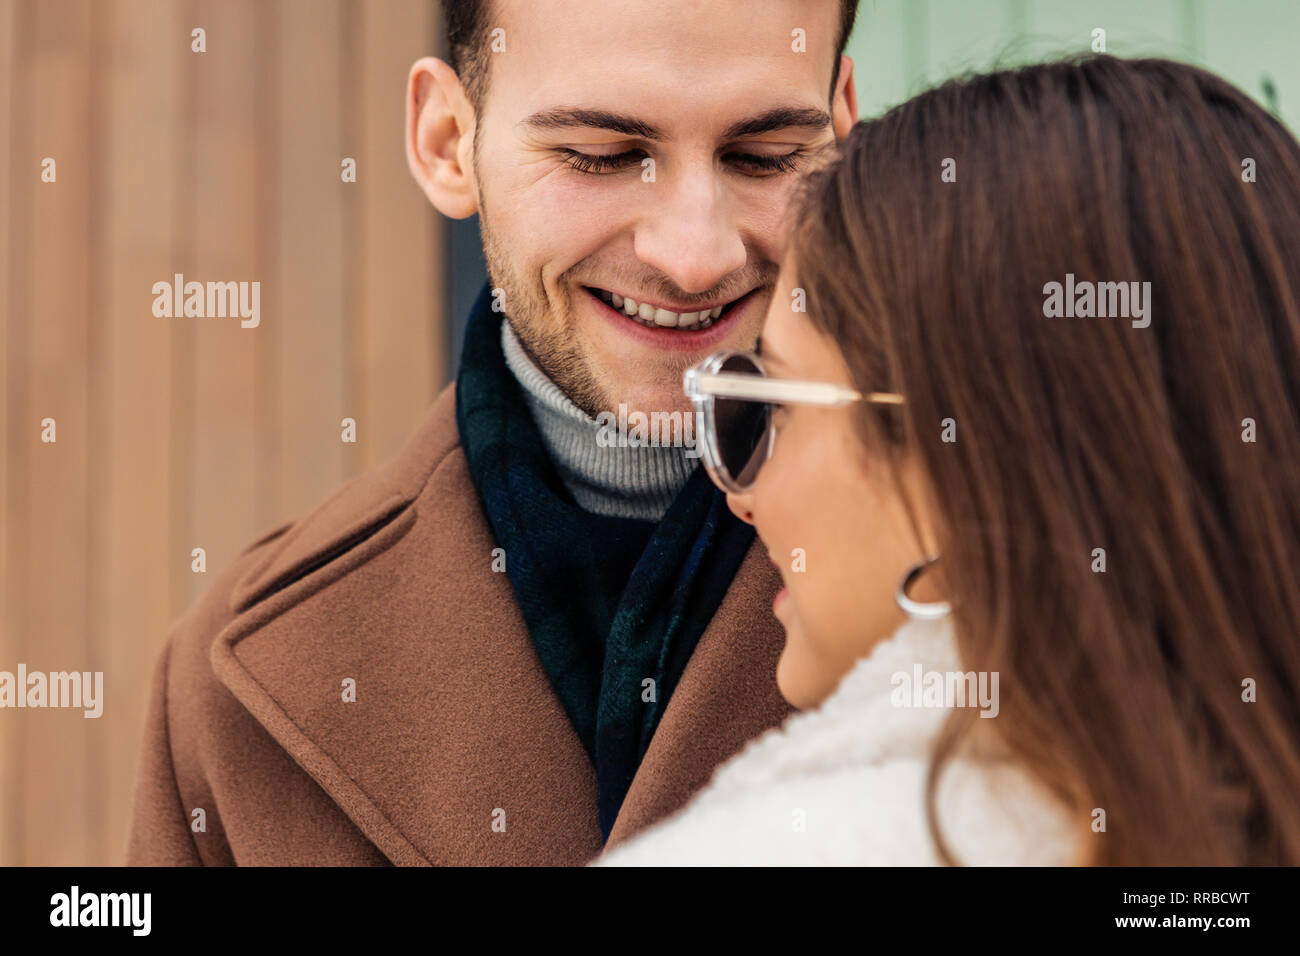 Handsome man falling in love with his appealing girlfriend - Stock Image